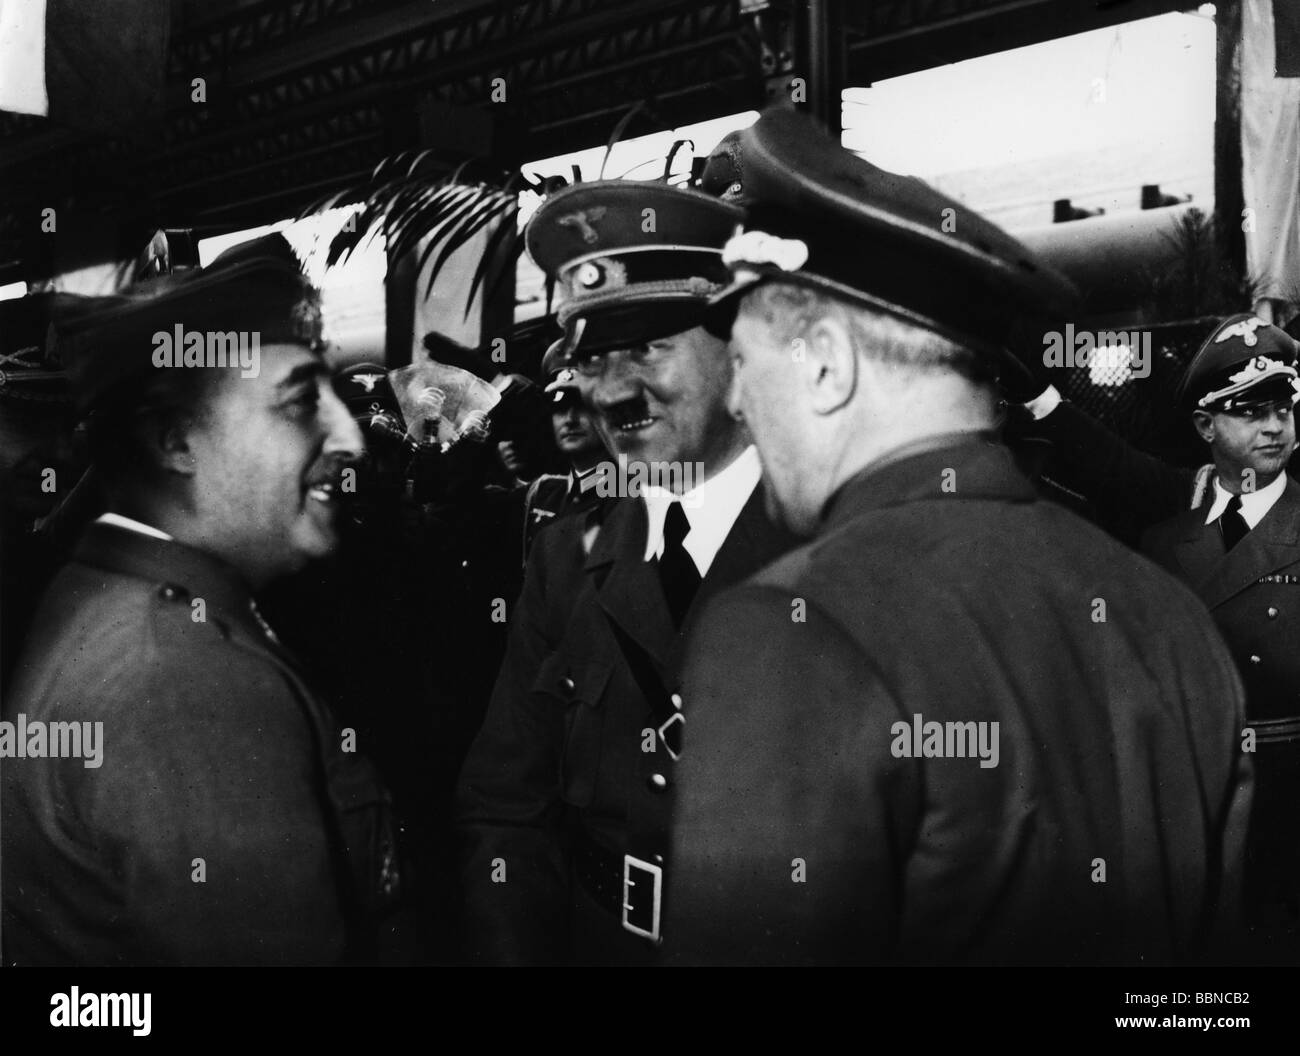 Roter Teppich Spanisch Francisco Franco Stockfotos And Francisco Franco Bilder Alamy